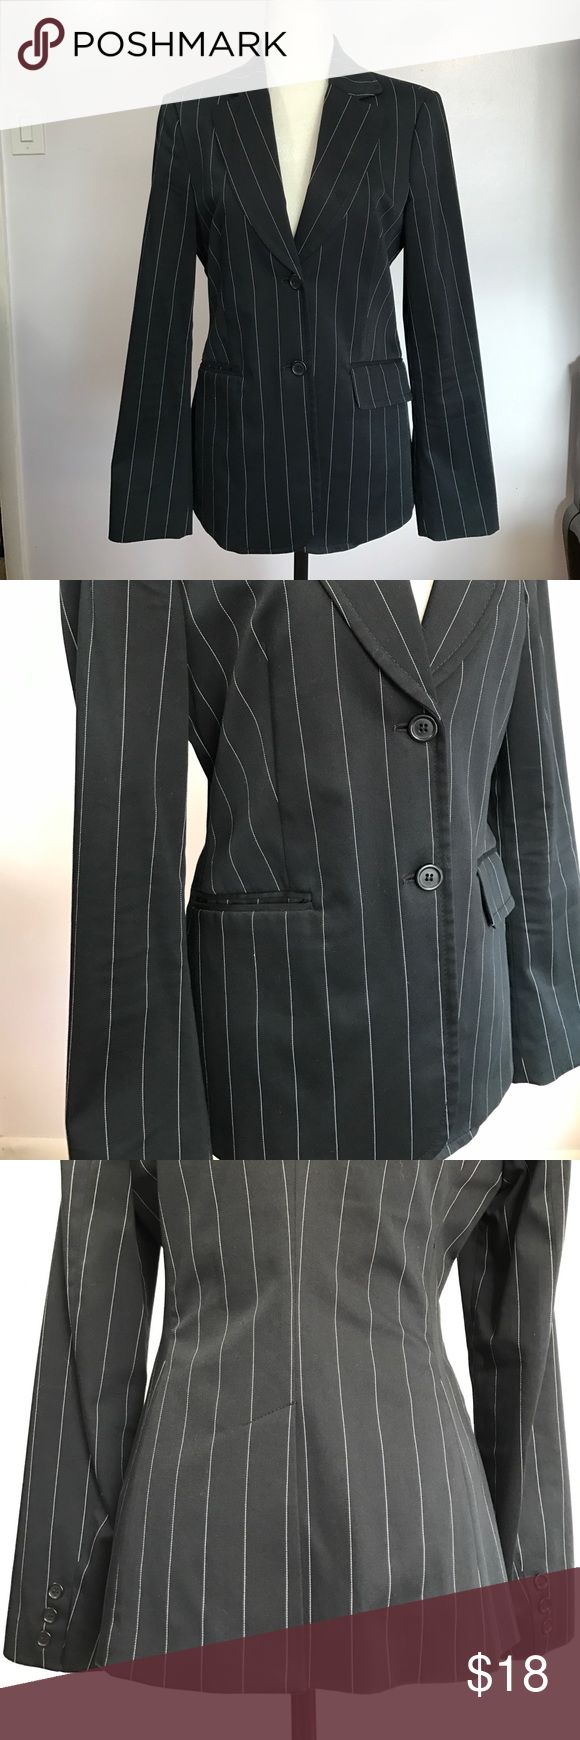 """United Colors Of Benneton Tailored Jacket Excellent condition- no flaws! 100% polyester. Armpit to armpit- 18"""". Waist- 16"""". Length- 261/2""""💖💕 United Colors Of Benetton Jackets & Coats Blazers"""